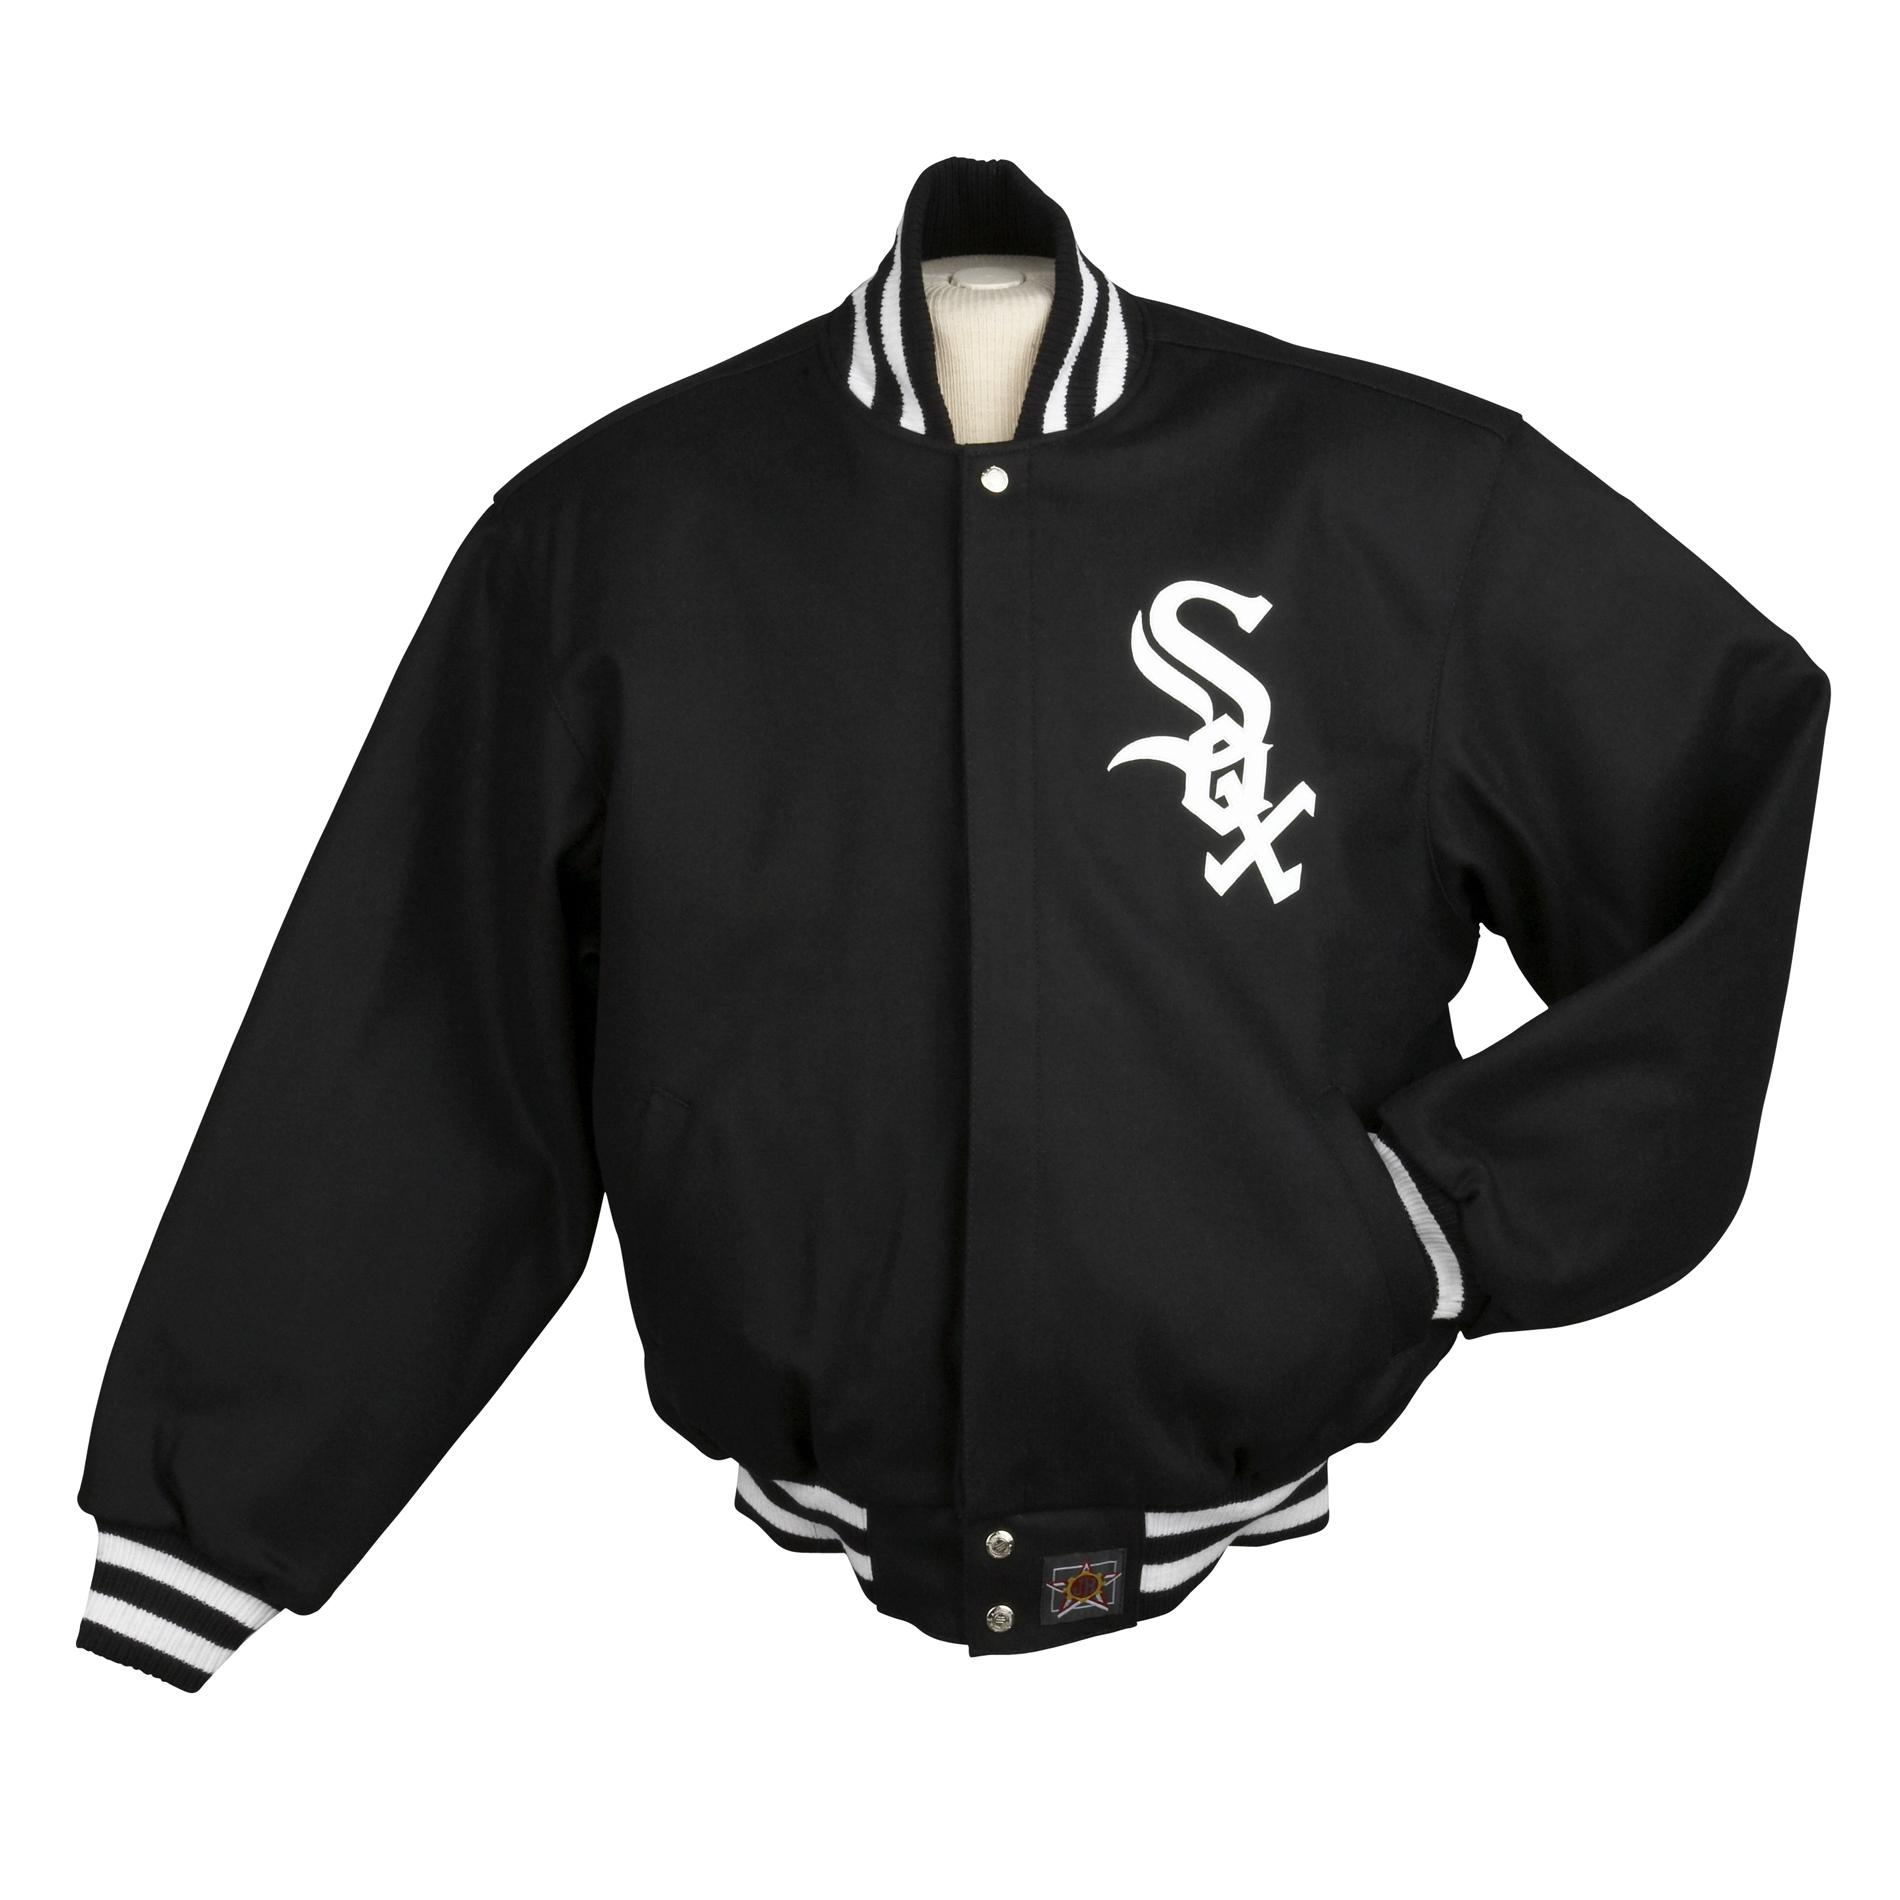 JH Designs Men's Chicago White Sox Domestic Wool Jacket - Thumbnail 0